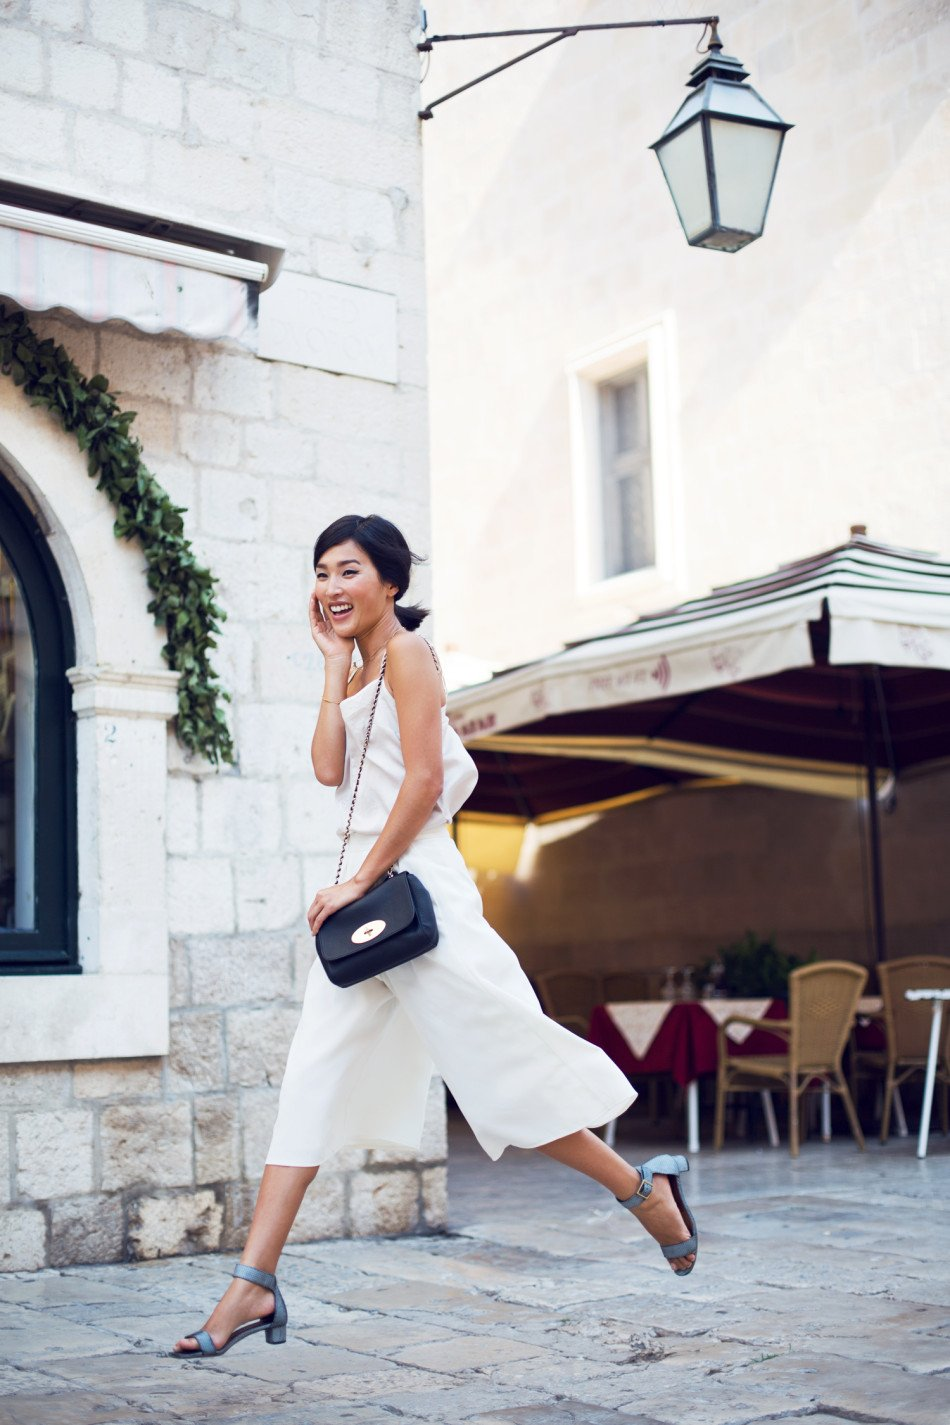 Culotte Shorts Fashion Trend Spring Summer 2015 Just